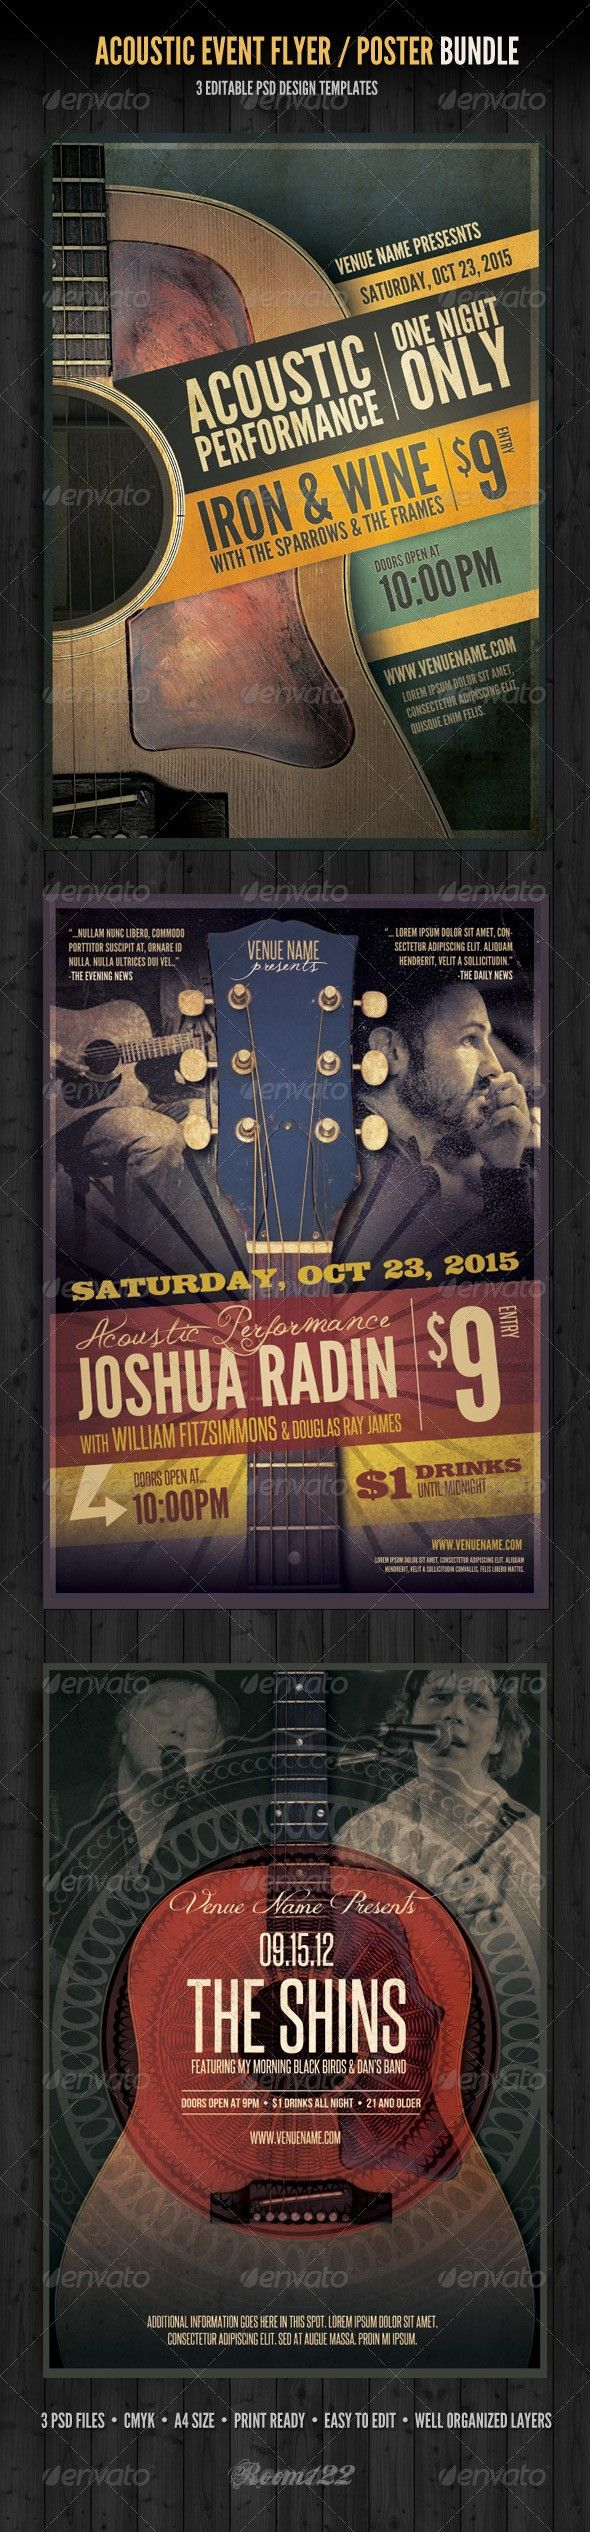 Acoustic Event Flyer/Poster Template Bundle Poster